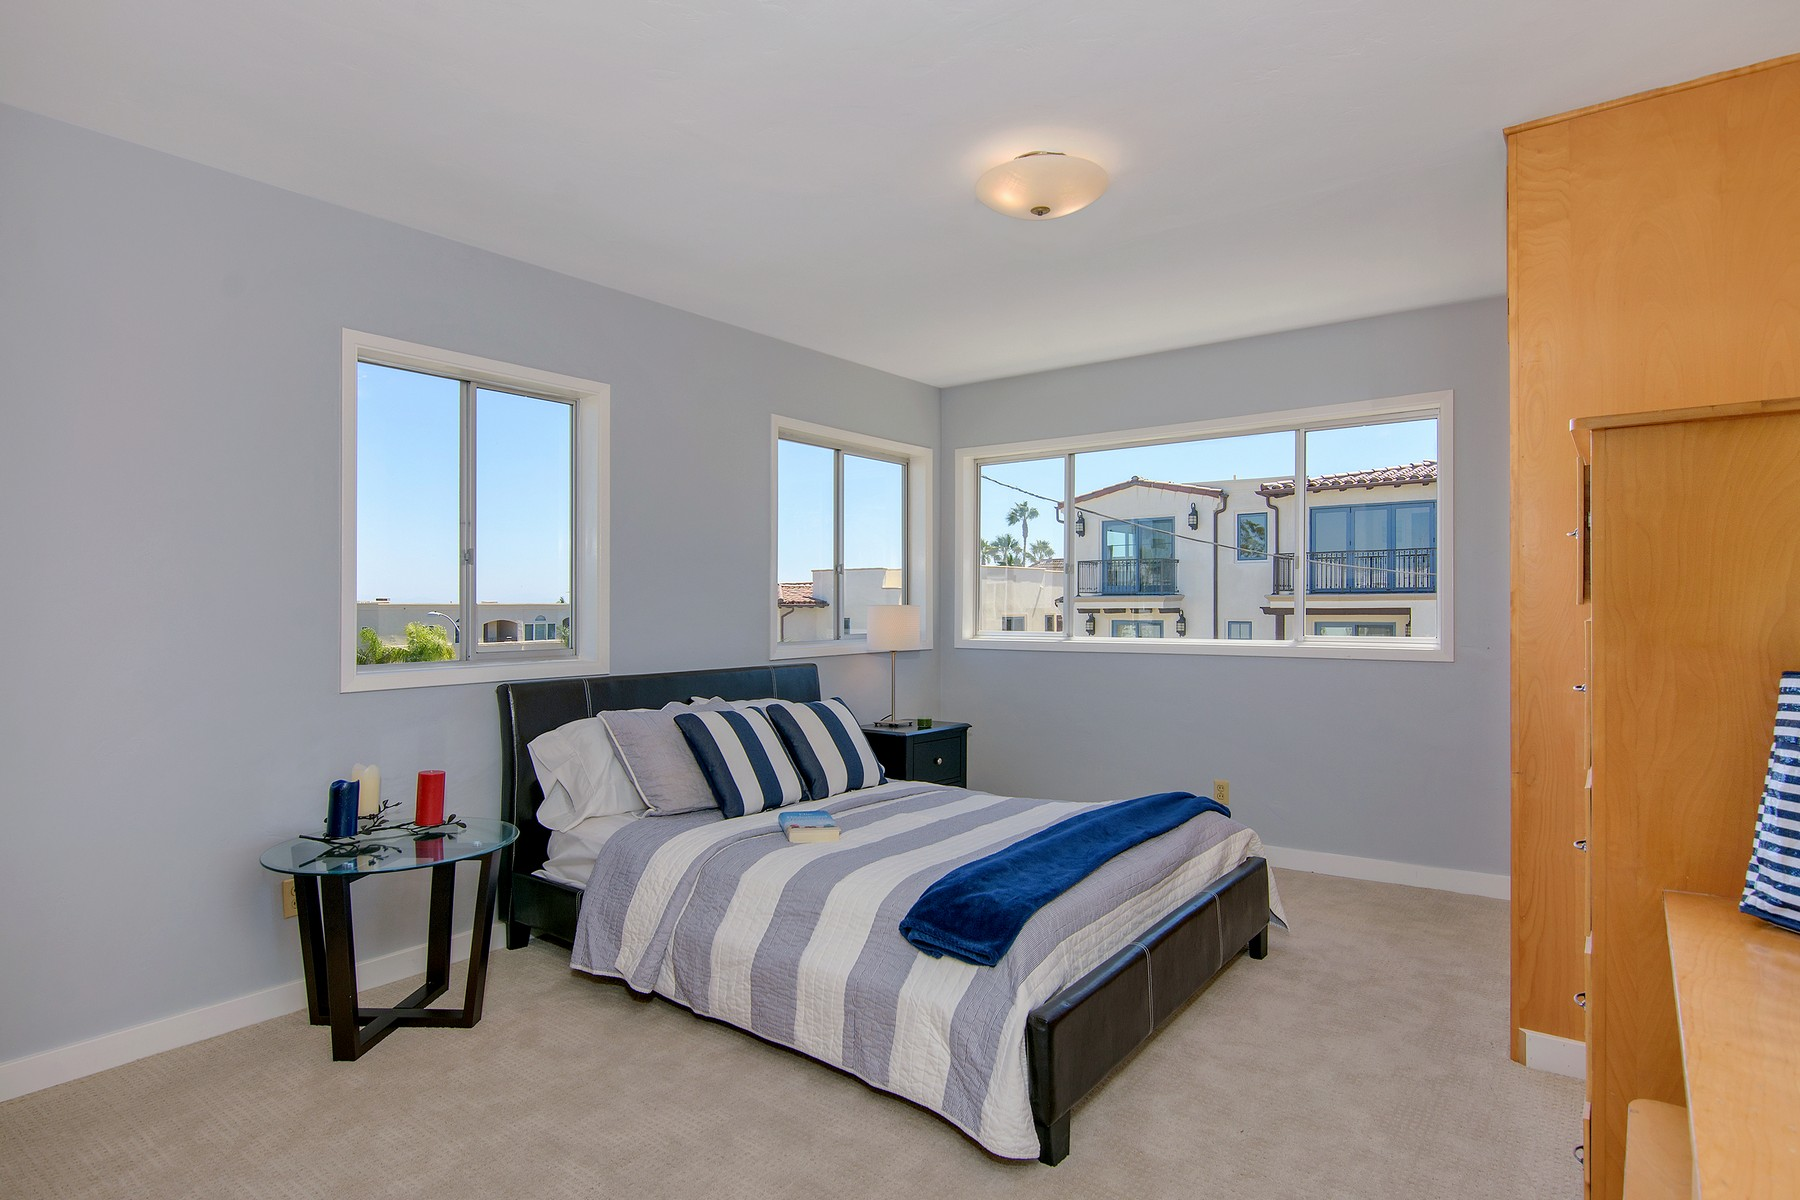 Additional photo for property listing at 3022 Lawrence Street  San Diego, California 92106 Estados Unidos